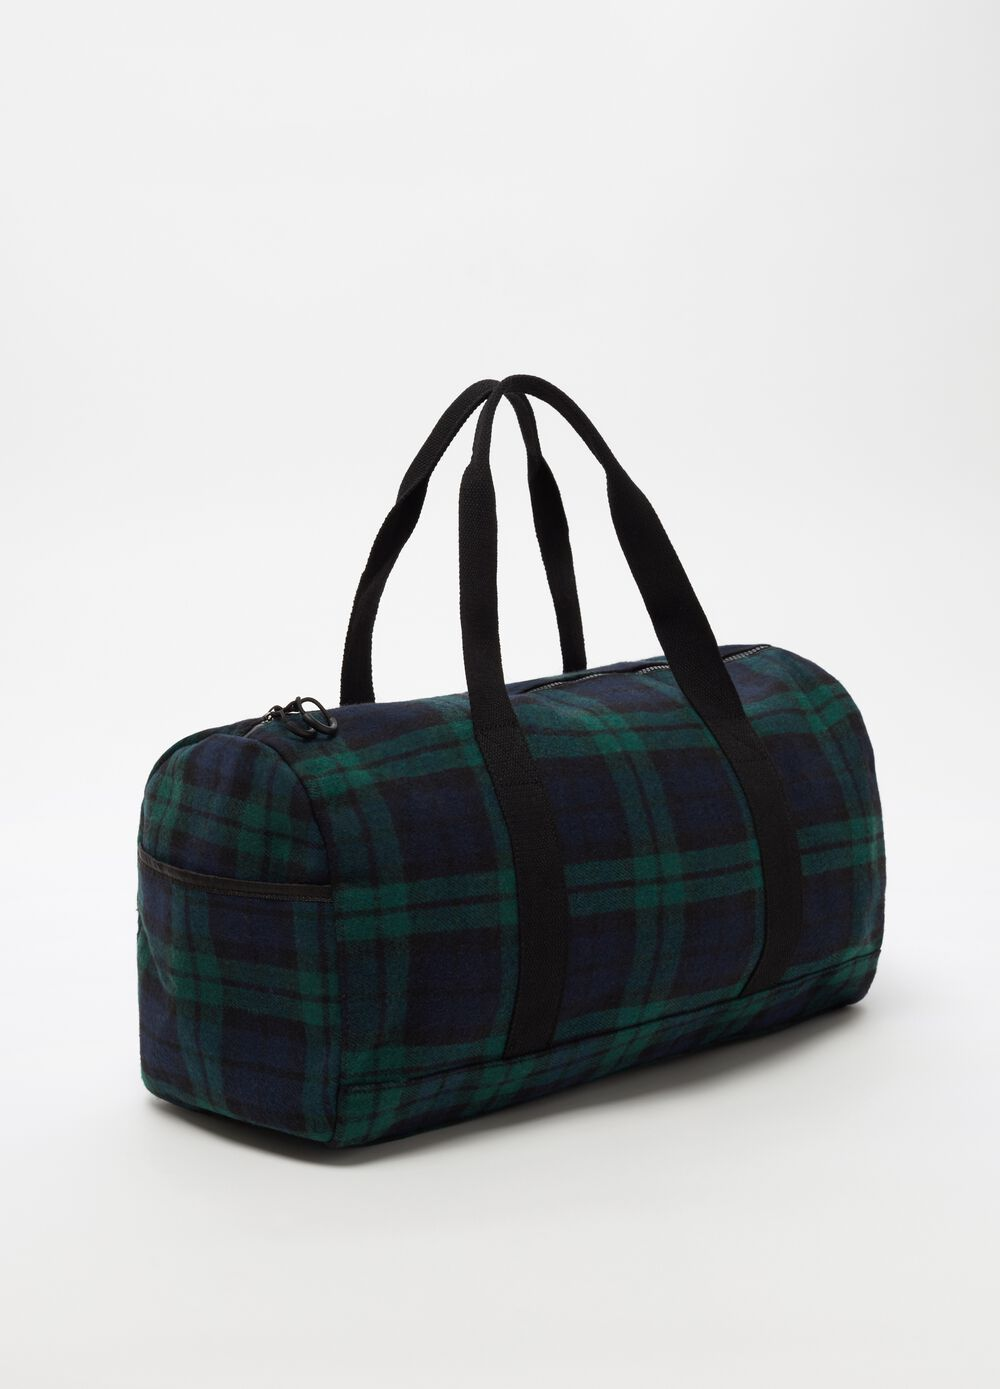 Large bag with zip and check pattern